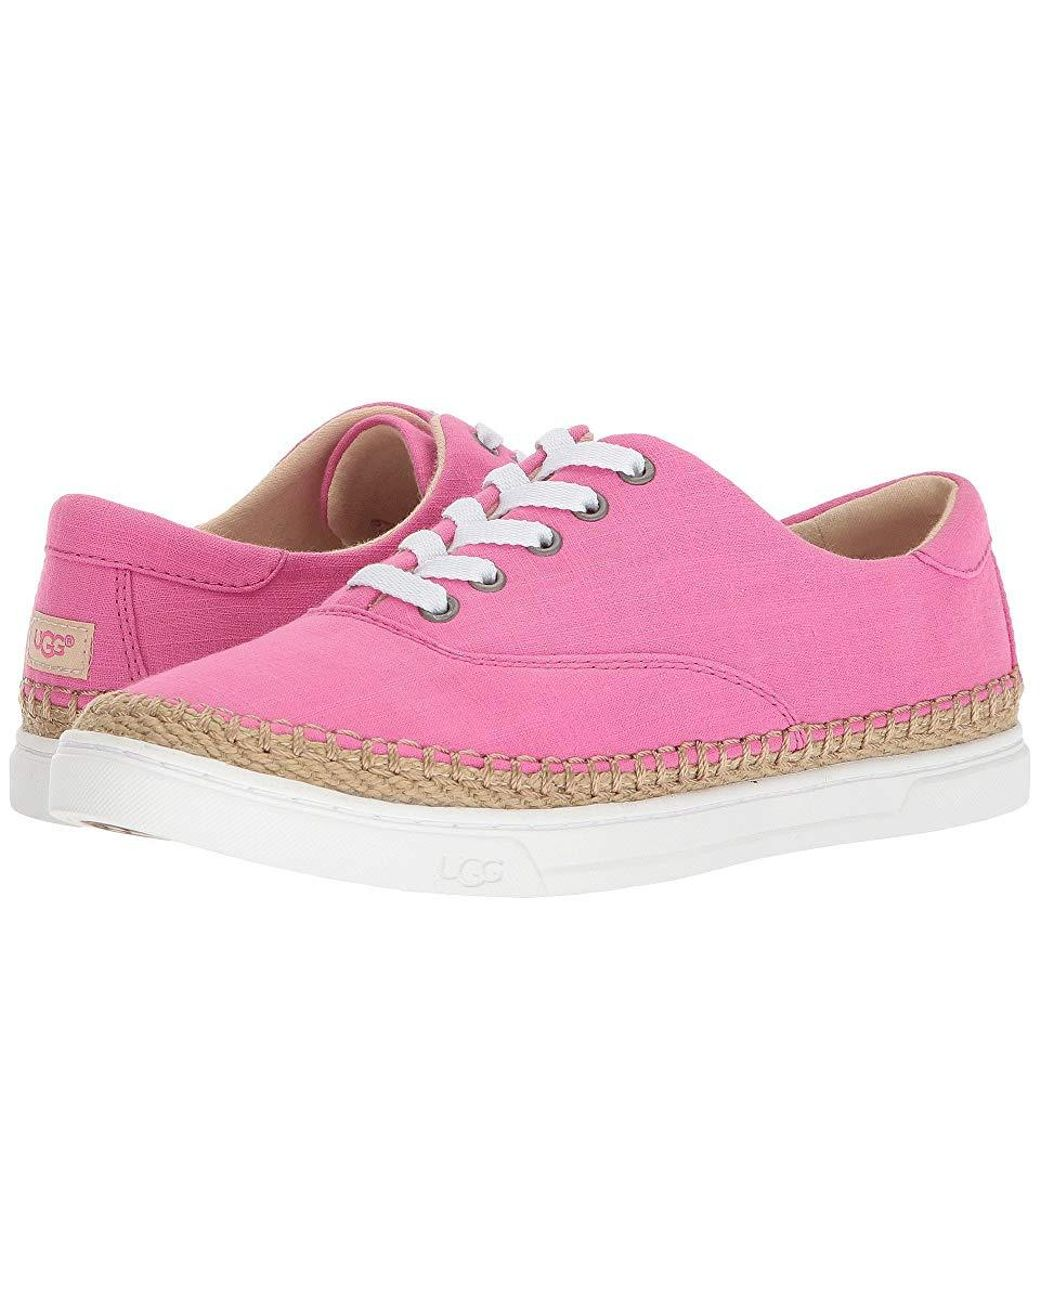 a1840d26b90 UGG Eyan Ii (pink Azalea) Lace Up Casual Shoes in Pink - Lyst